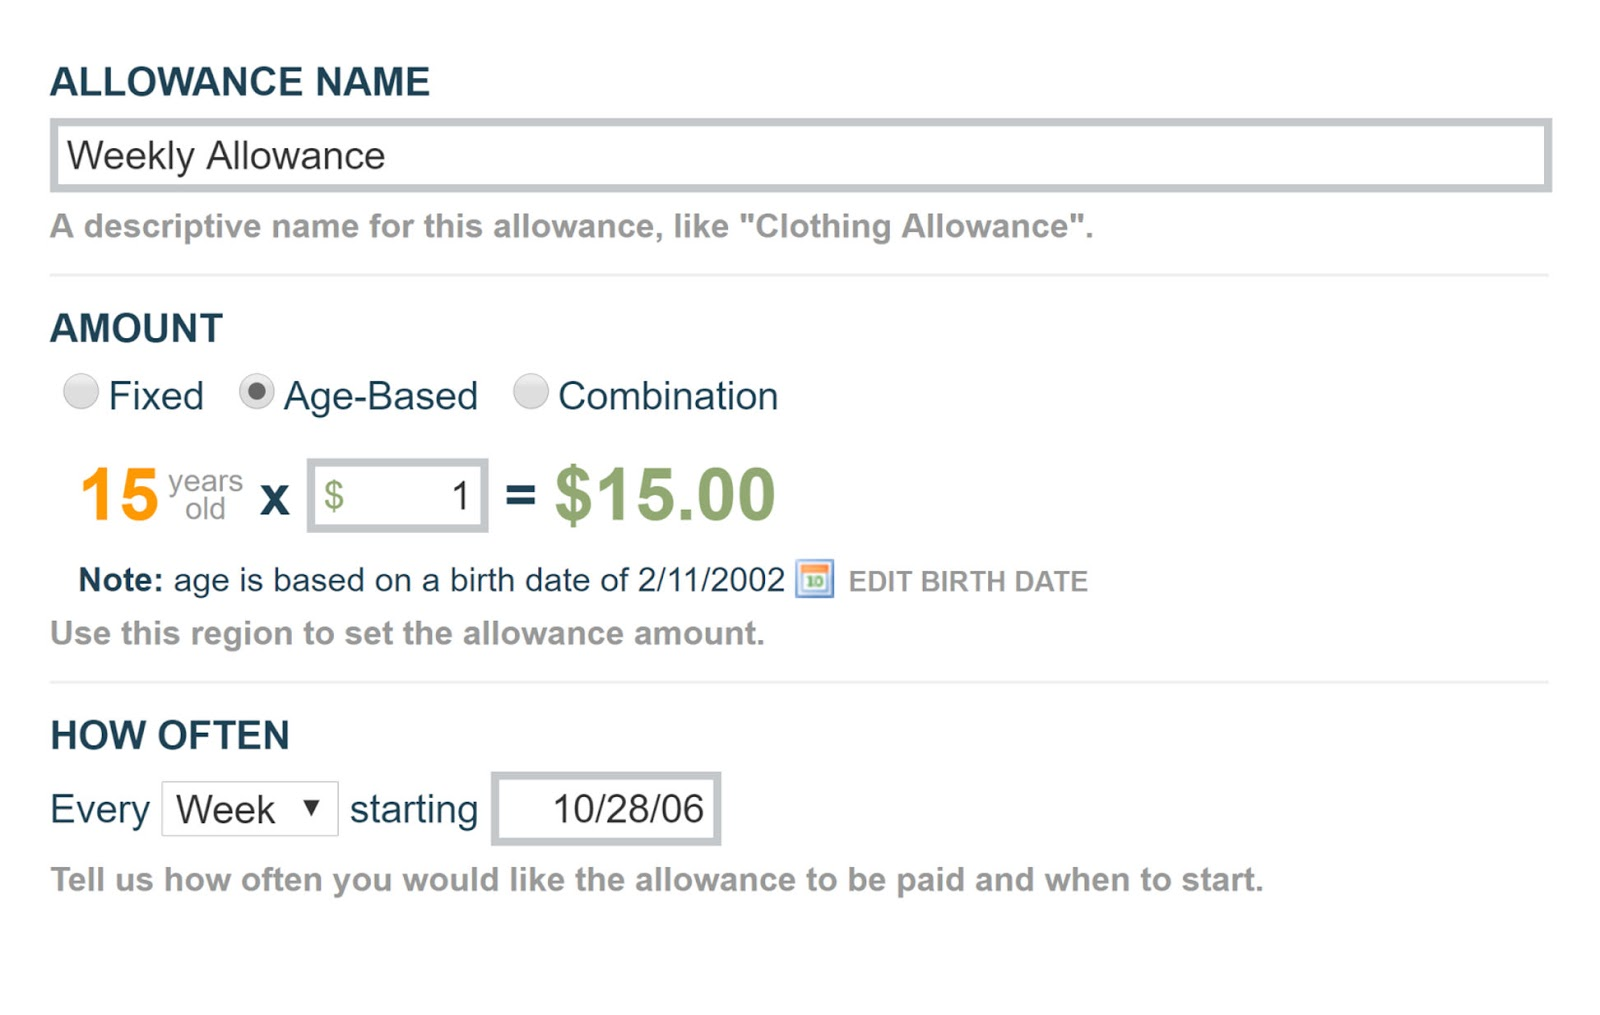 Allowance form.